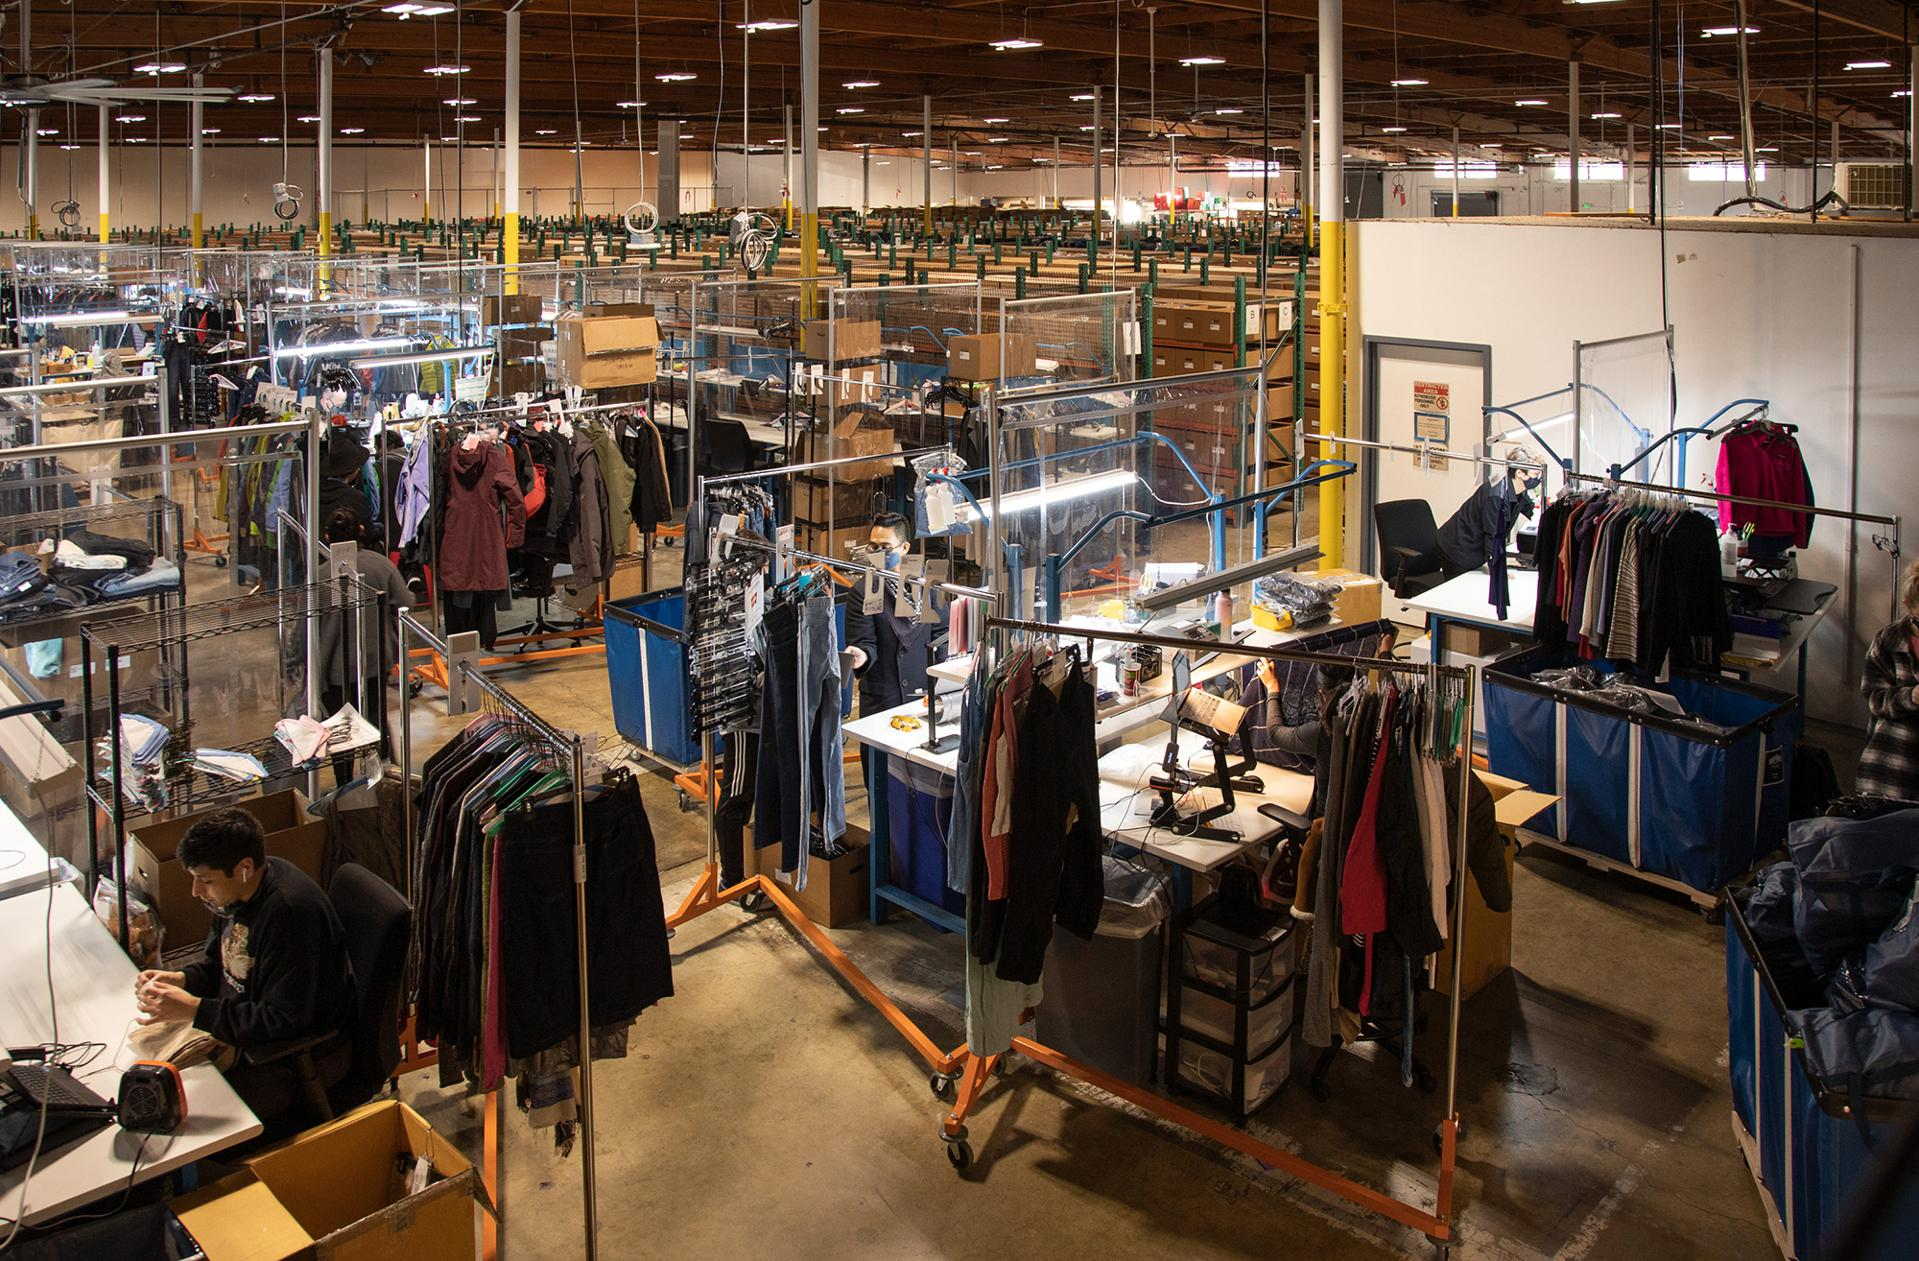 """One of the biggest challenges for brands entering resale: Dealing with an endless supply of unique items. """"It makes it tricky,"""" says Katie Wilson, senior manager for social and environmental sustainability at Arc'teryx. """"We don't have the infrastructure to sell one-of-a-kind products."""""""